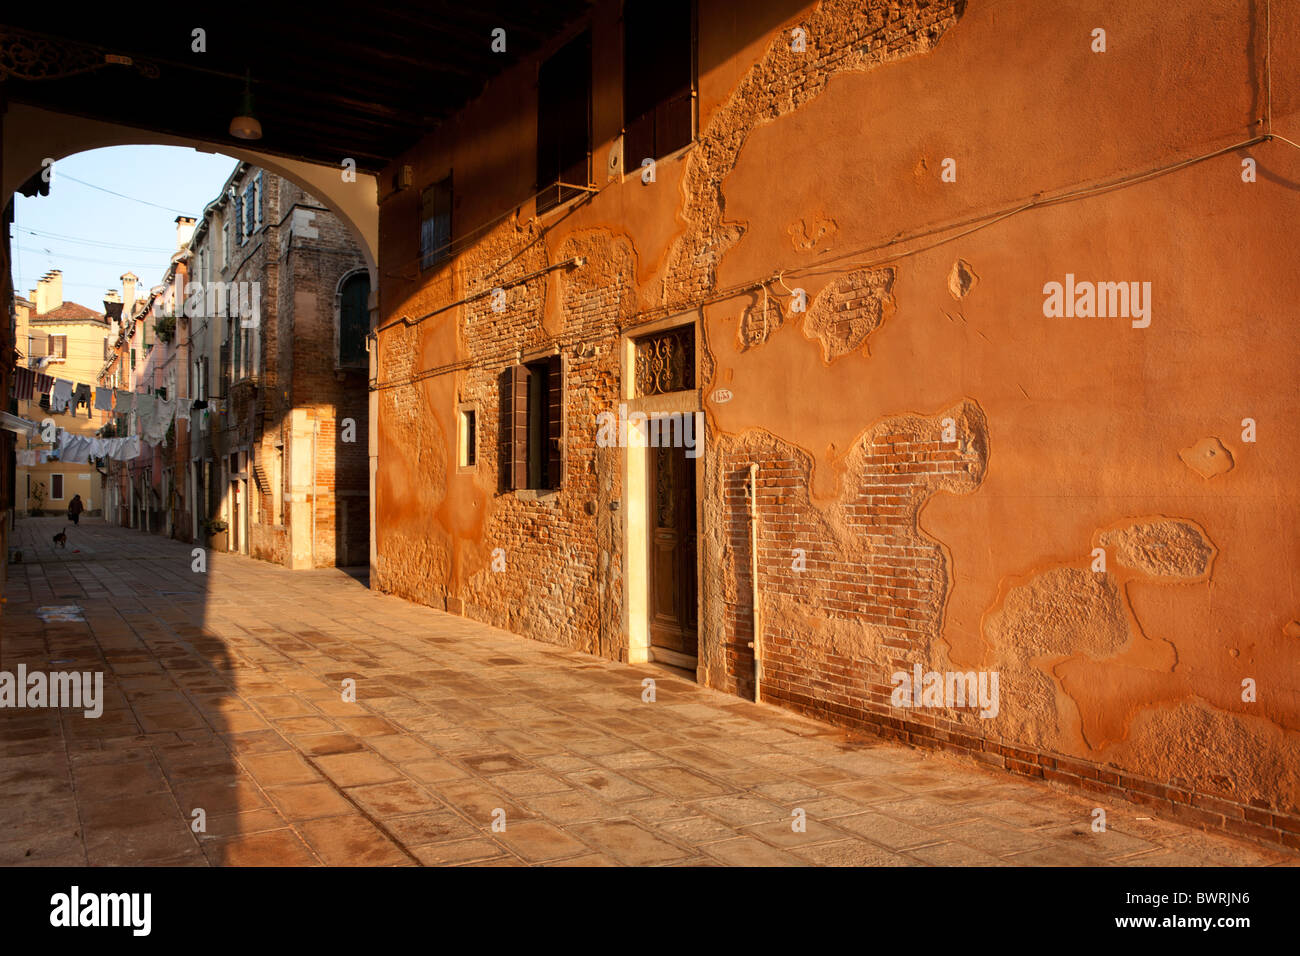 The afternoon sun lights up the Calle de le Colonne in the Castello district of Venice. - Stock Image